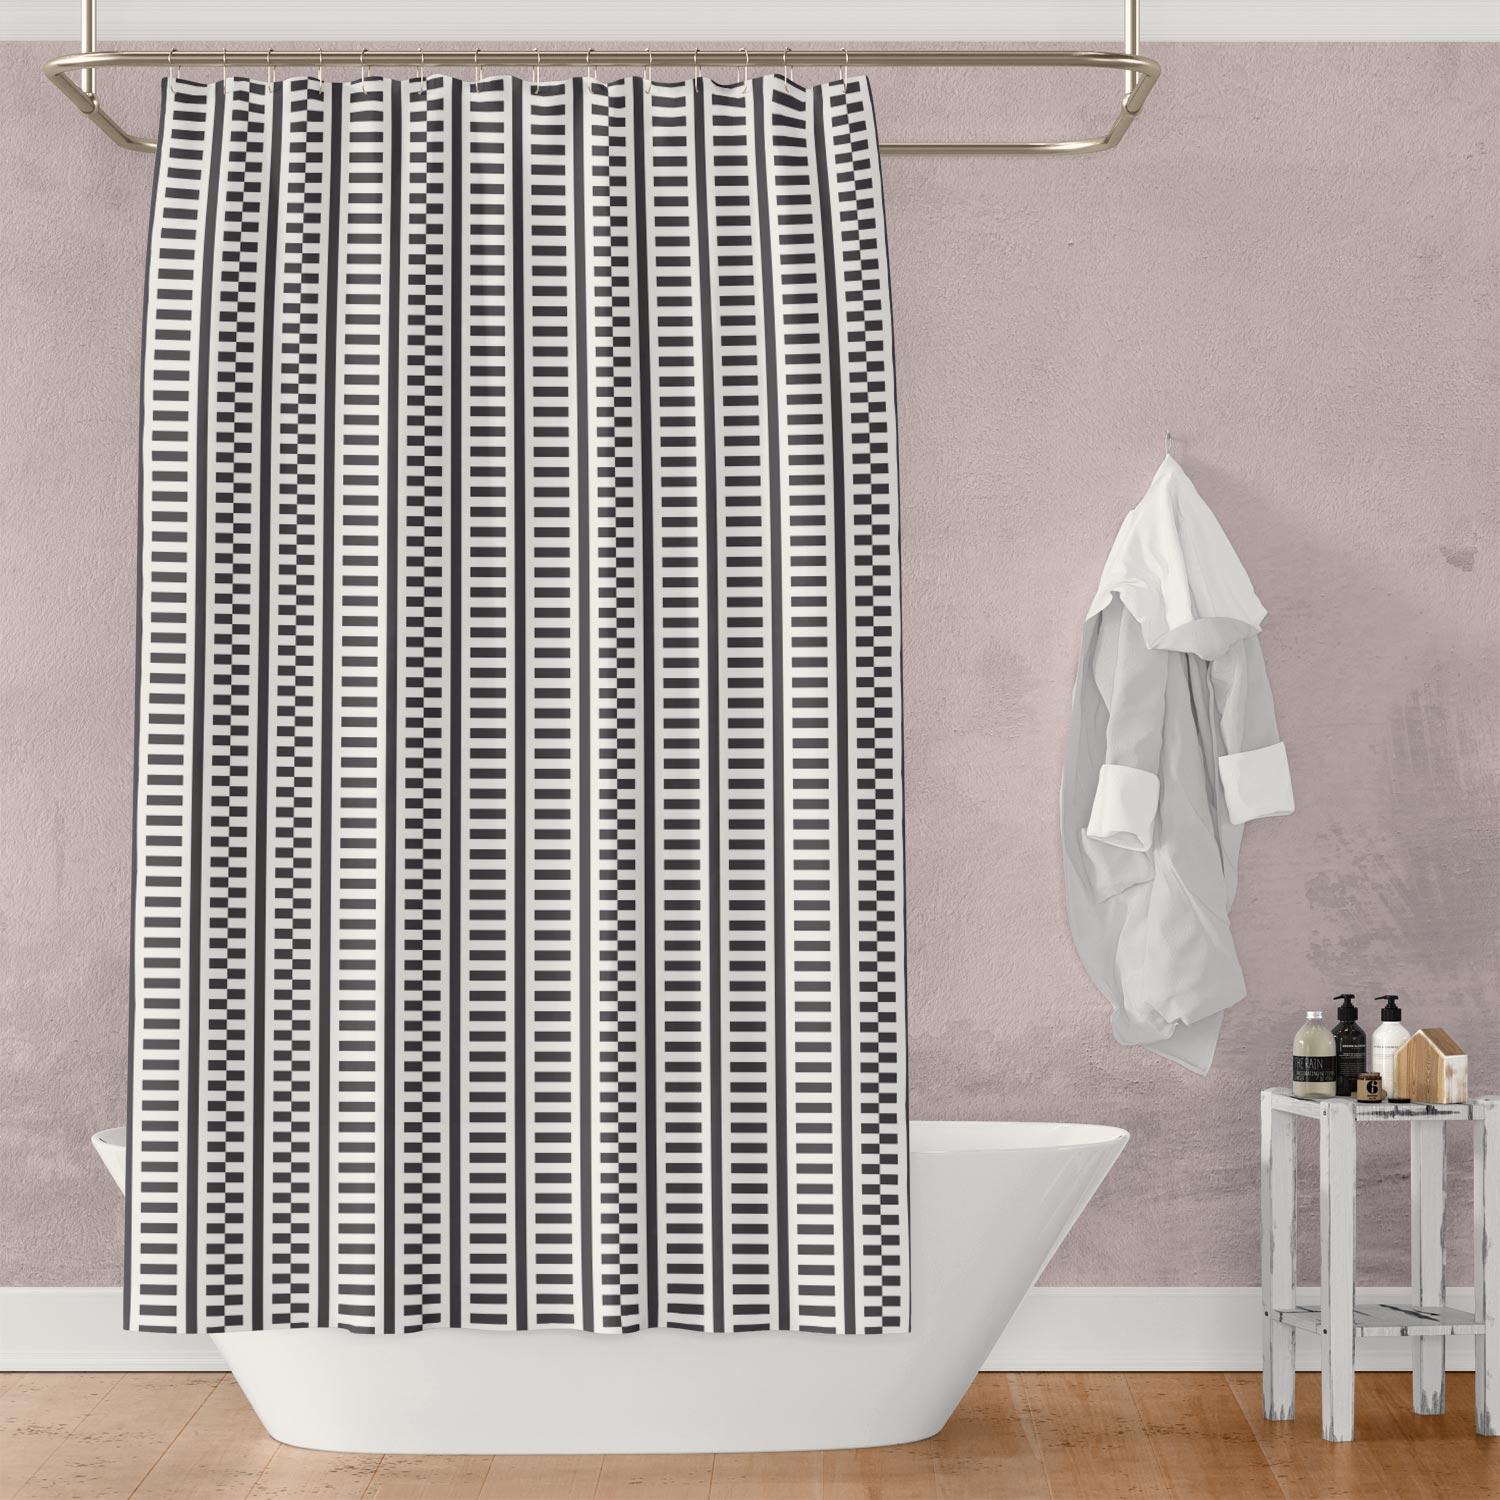 Black and White Shifted Stripes Shower Curtain